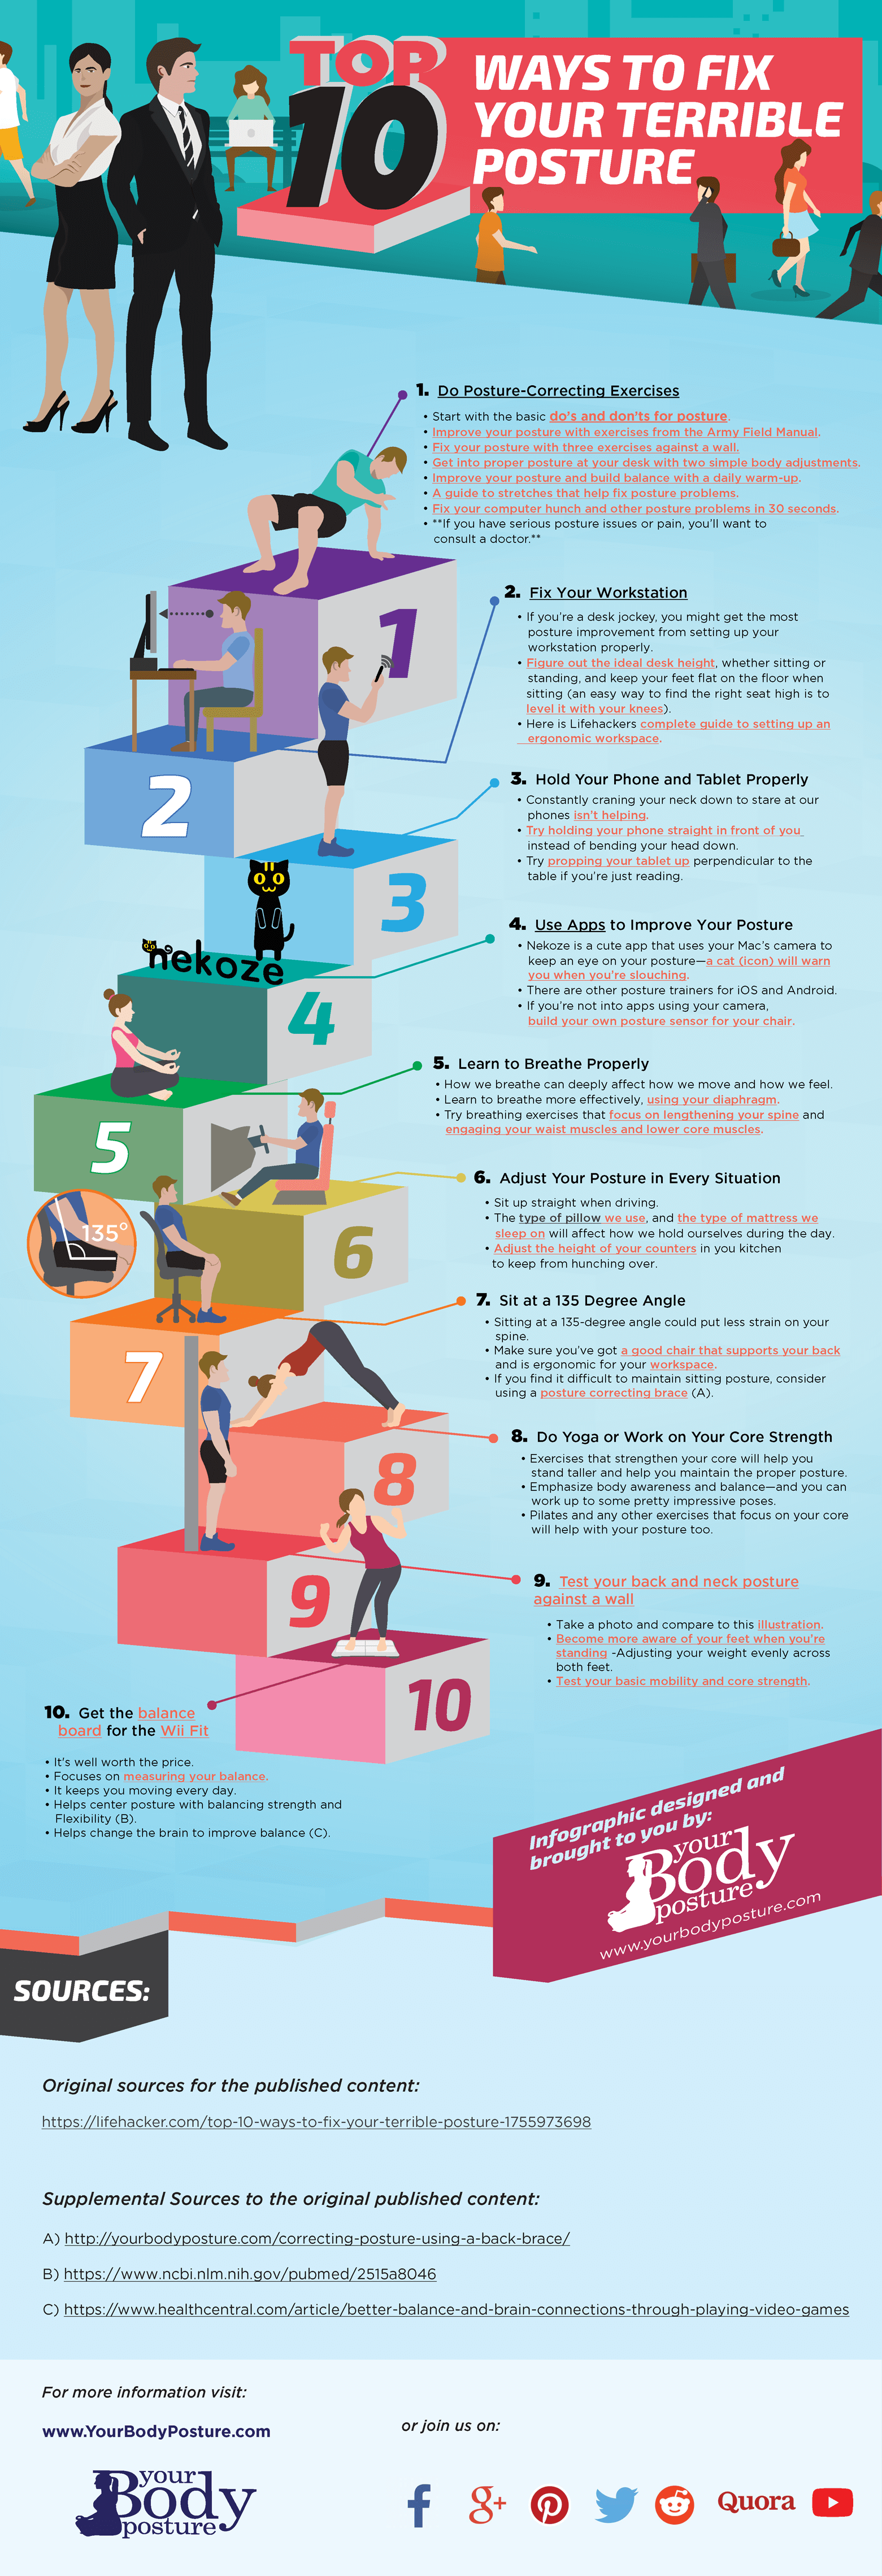 Top-10-ways-to-fix-posture-infographic-plaza